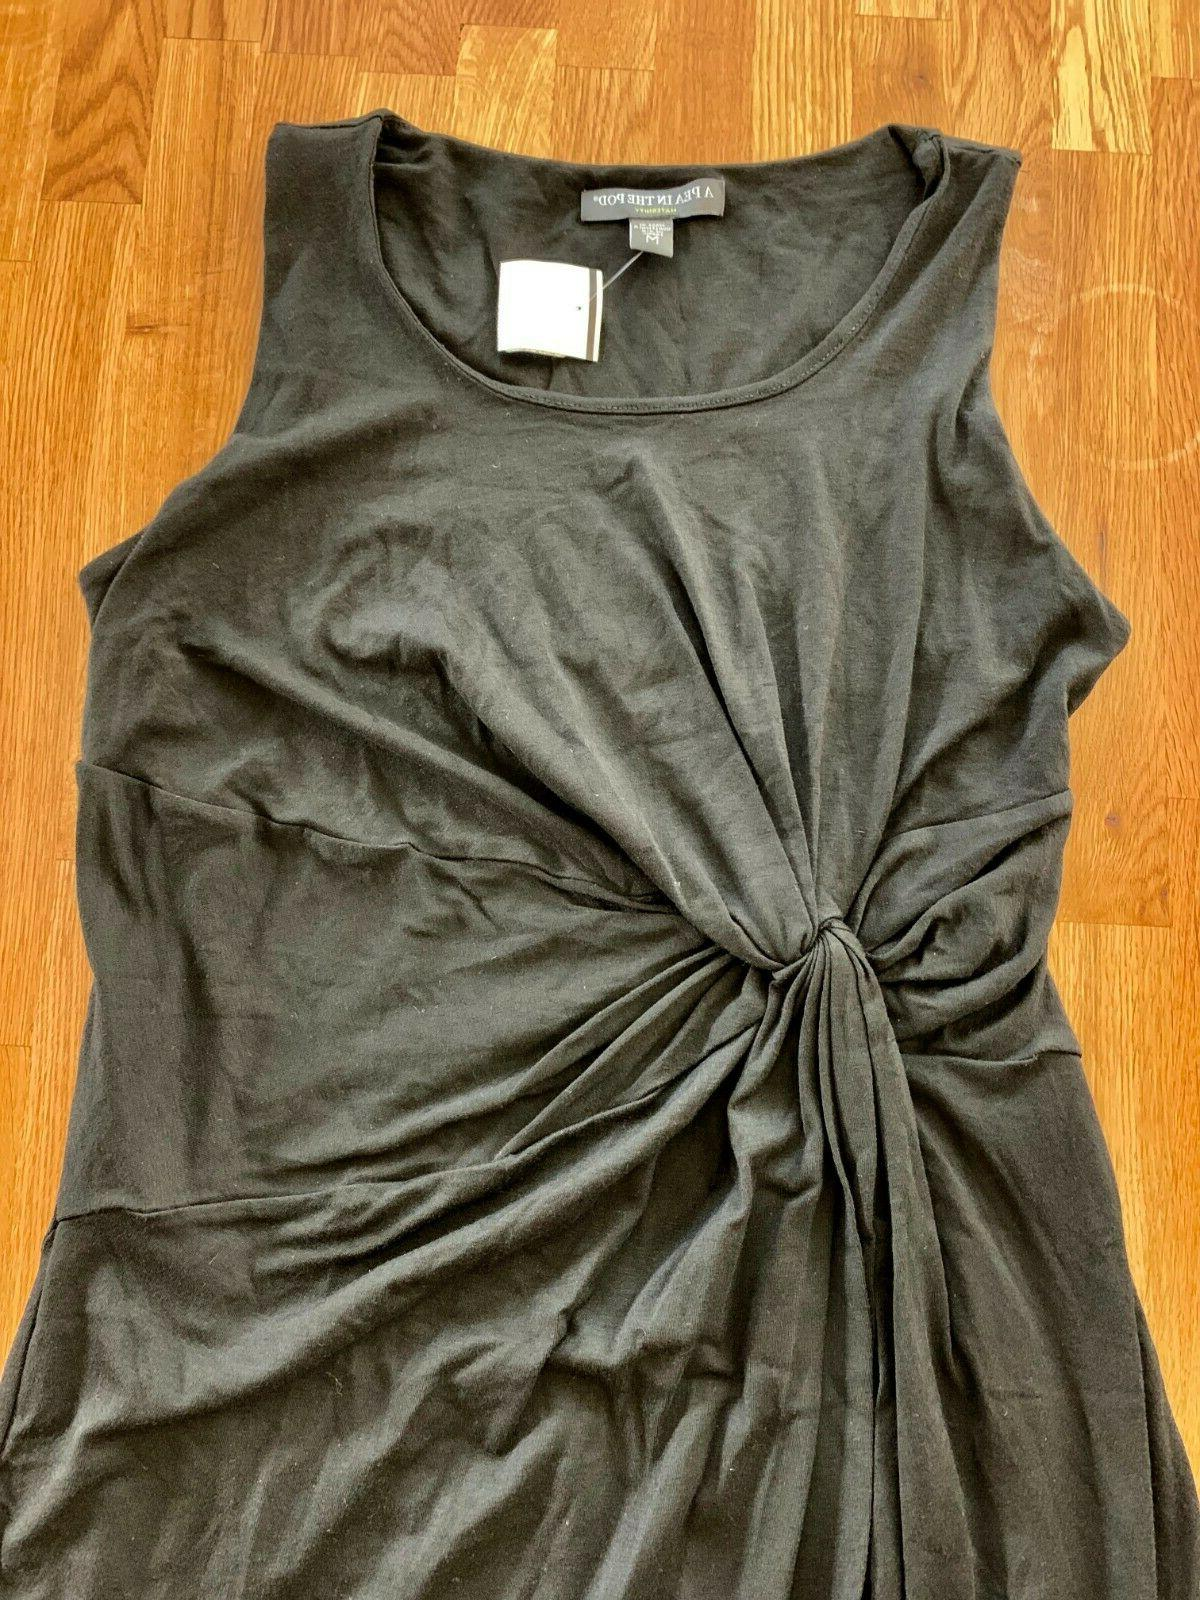 A On The Pod Sleeveless in Size M -NEW